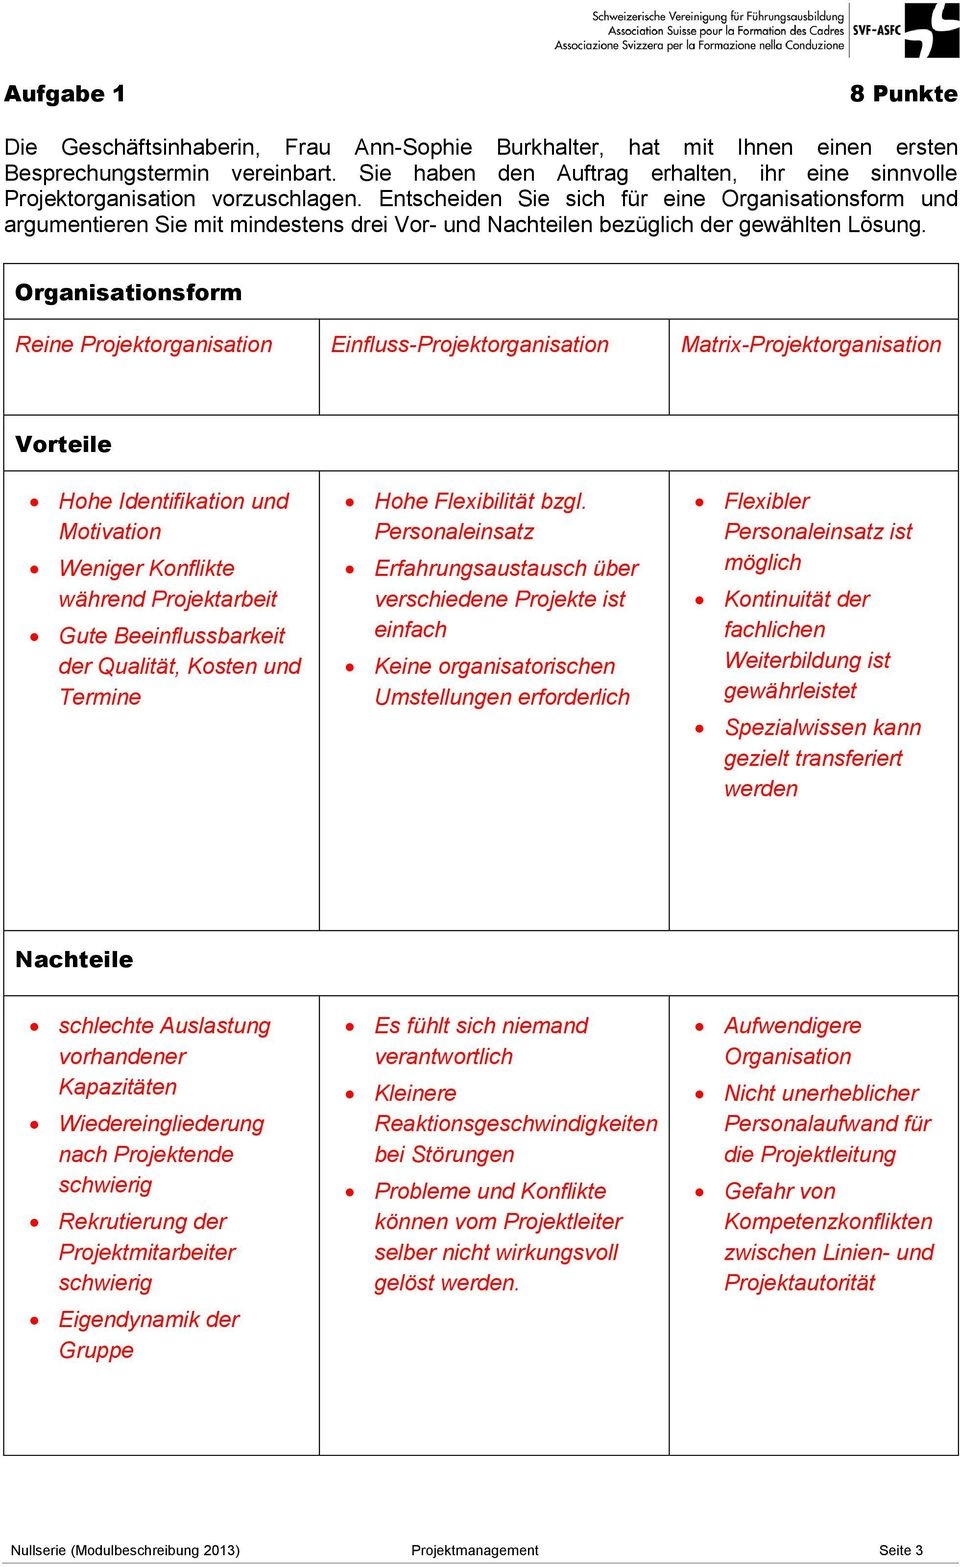 Charmant Projektabschlussvorlage Bilder - Entry Level Resume ...